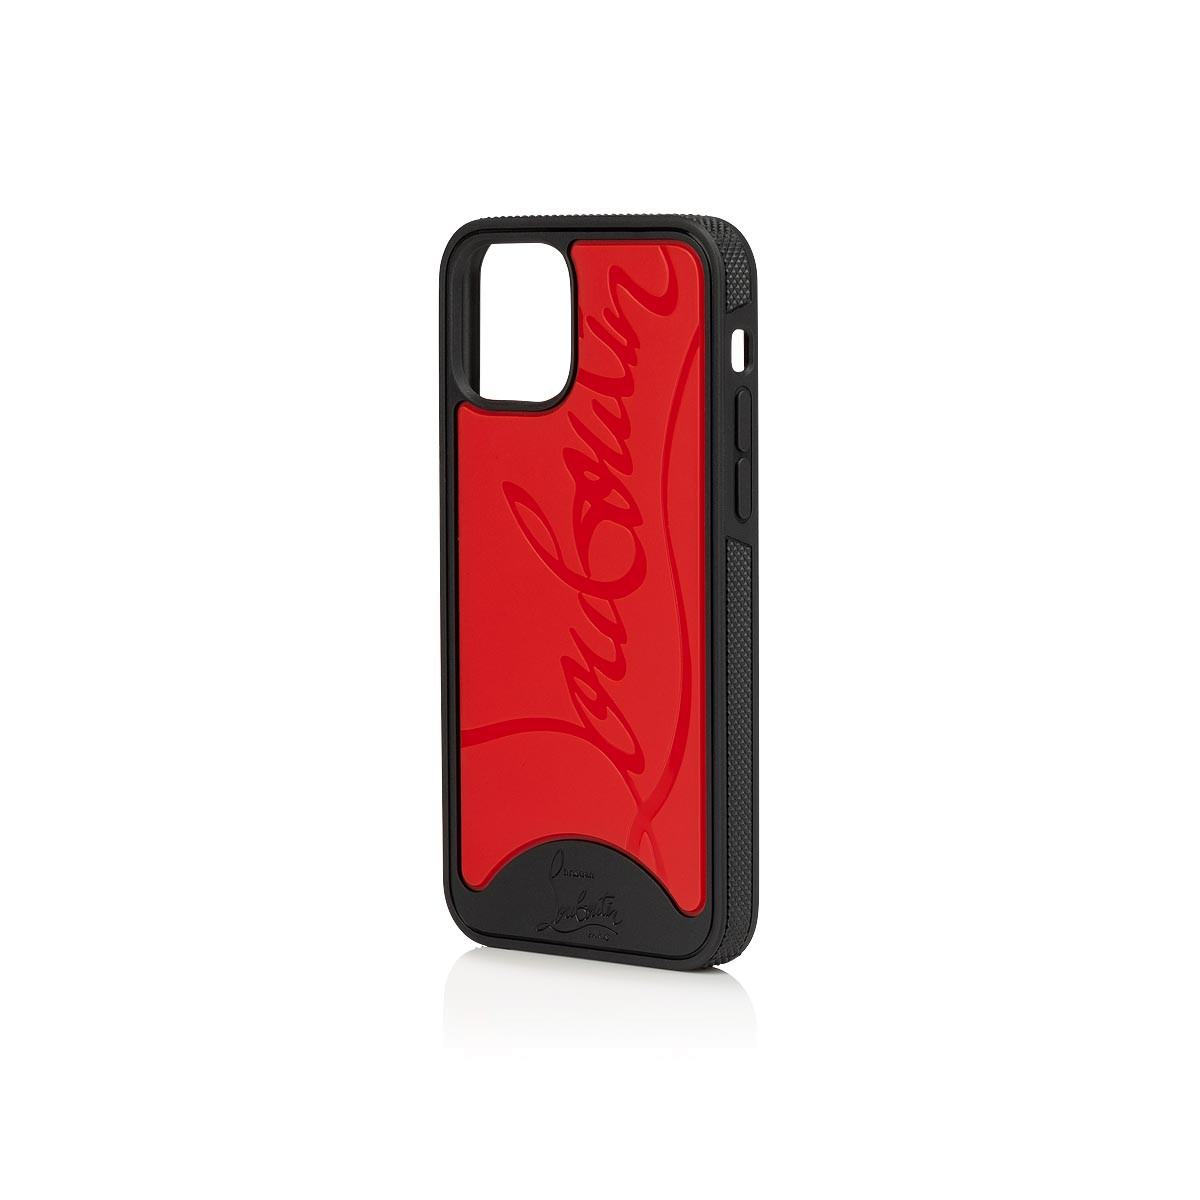 Small Leather Goods - Loubiphone Sneakers Case Iphone 11 Pro - Christian Louboutin